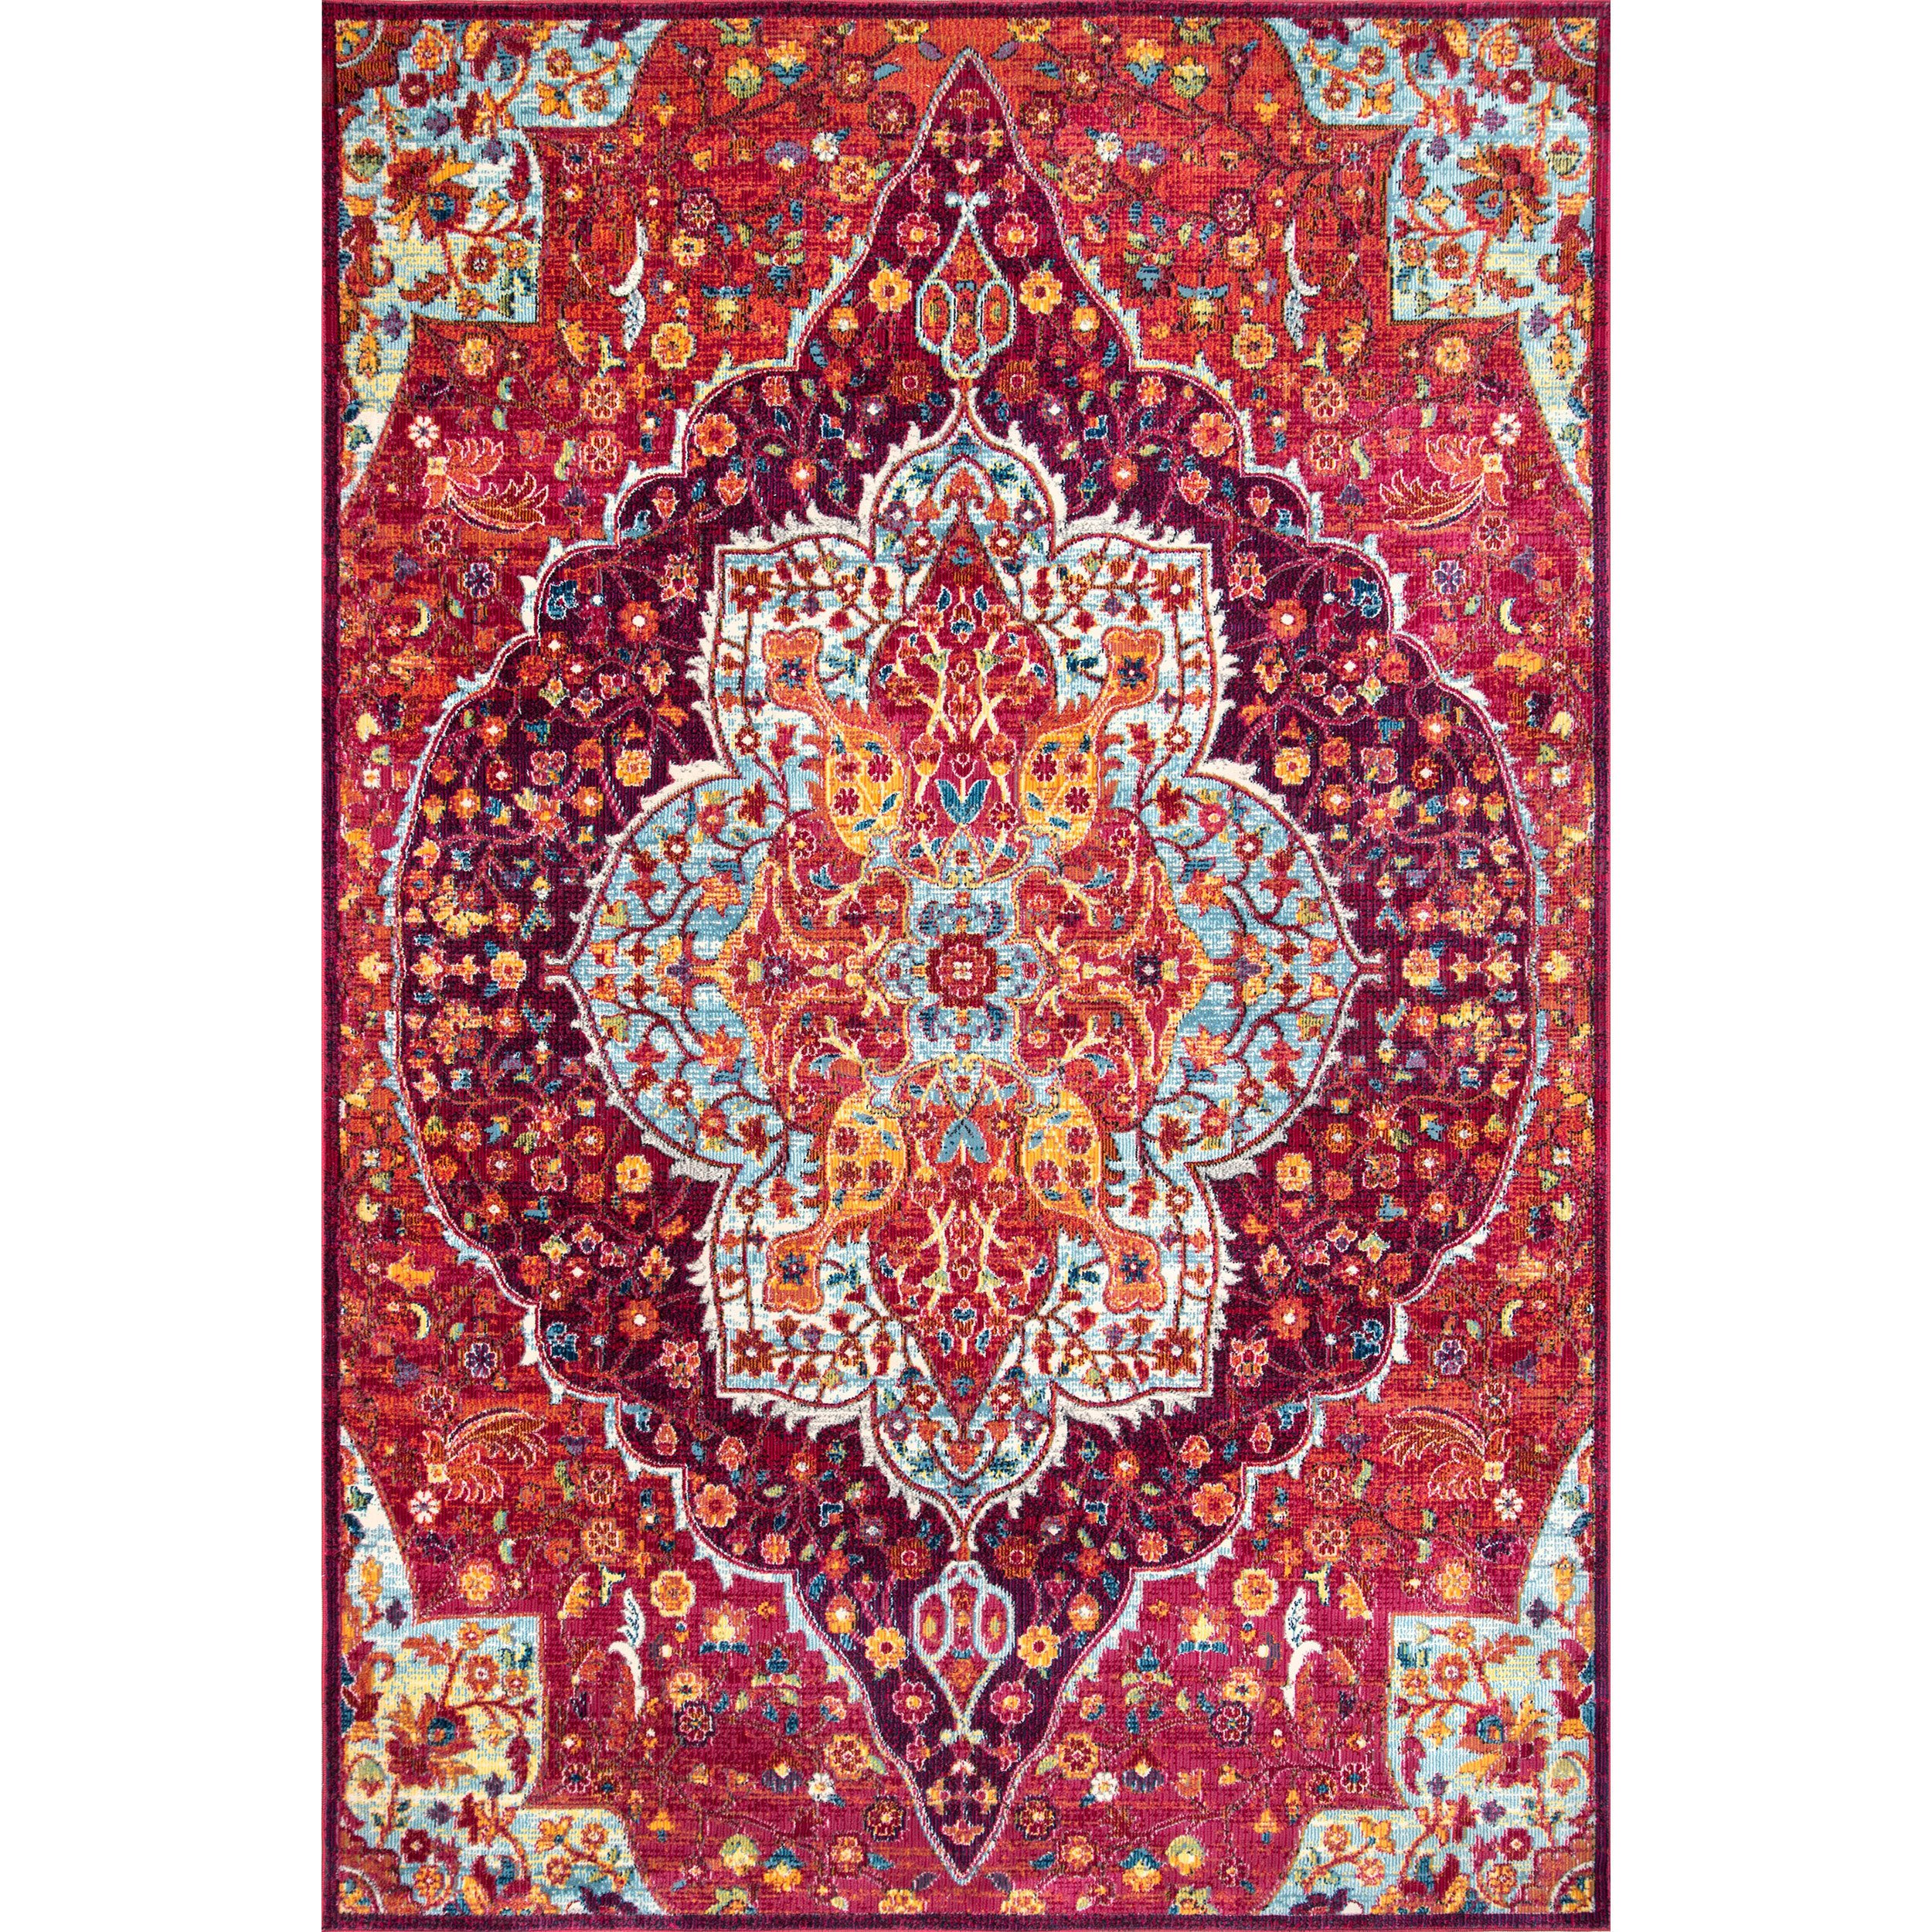 Nuloom Polypropylene 9' X 12' Rectangle Area Rugs In Pink 200RZDR08A-9012